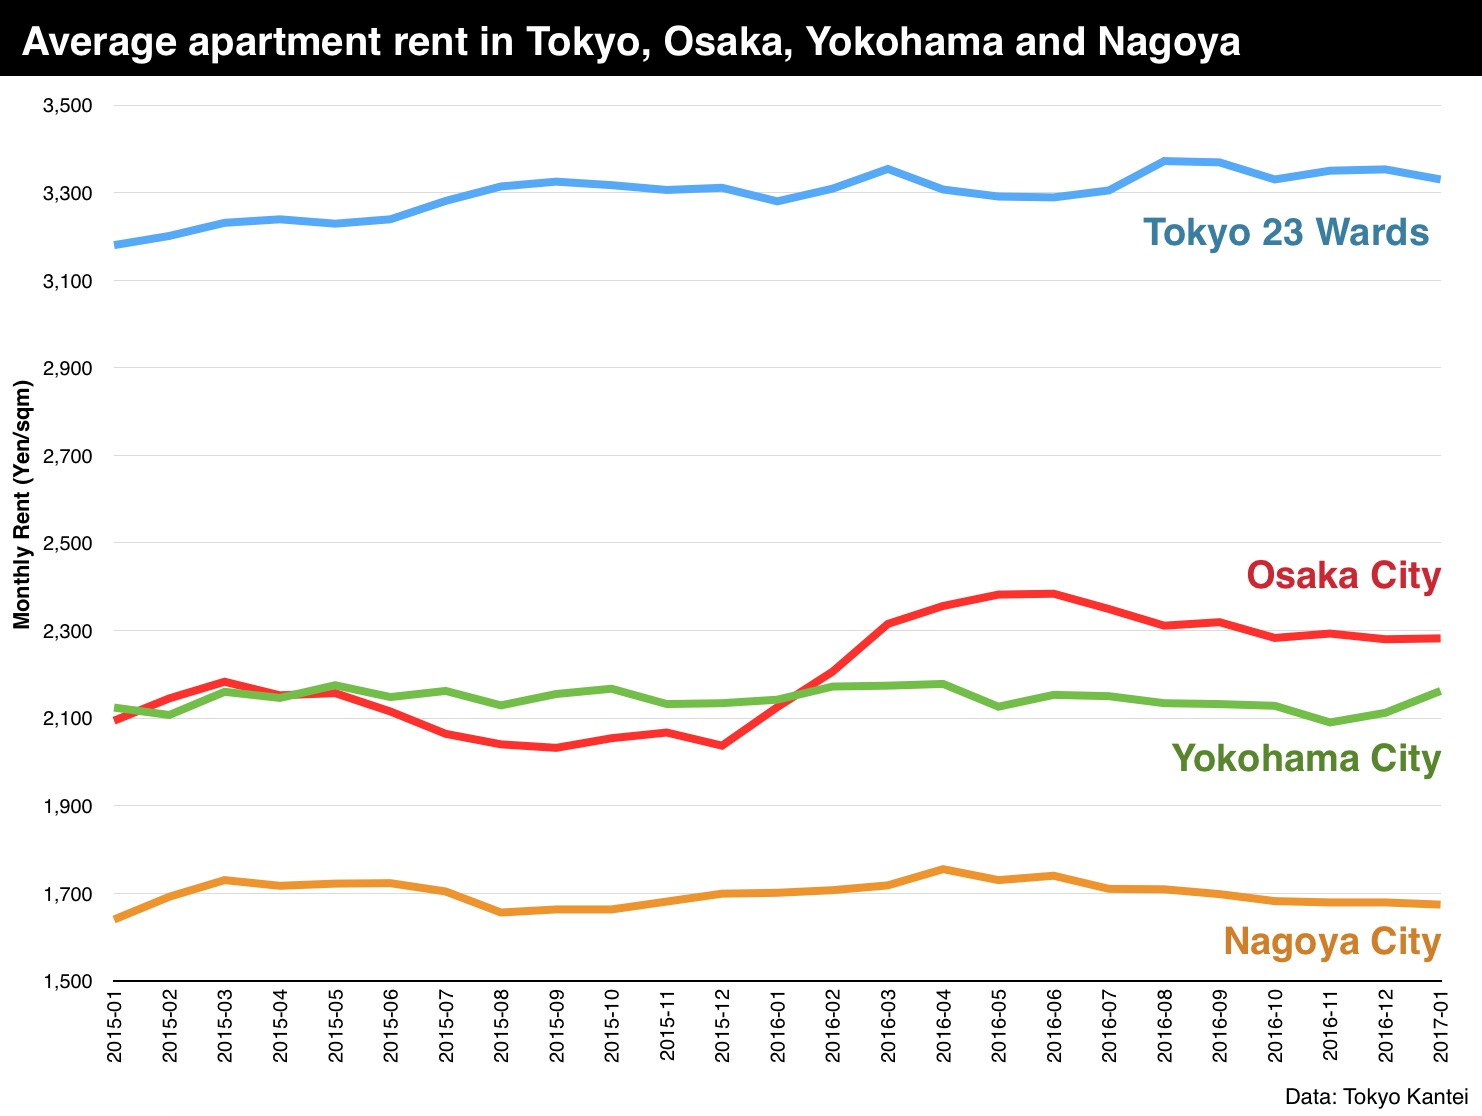 Average apartment rent in January 2017